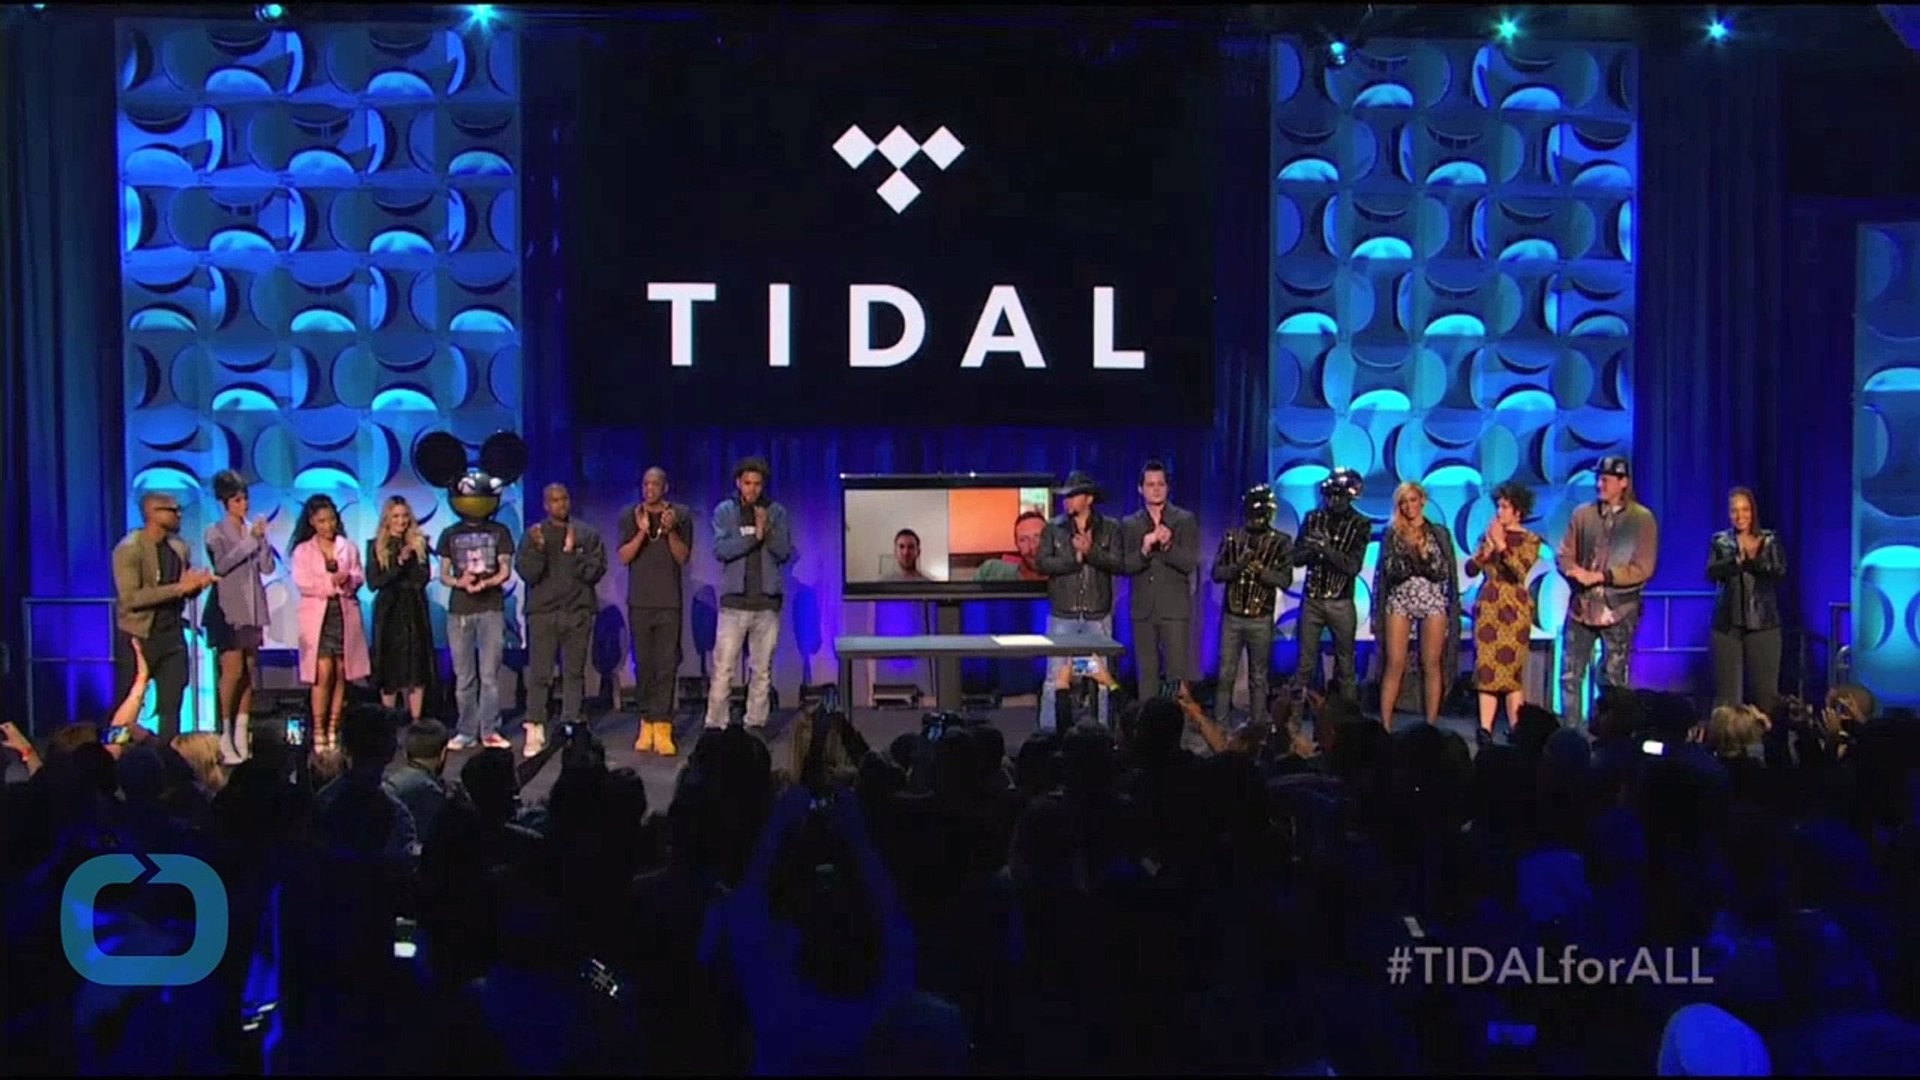 Jay Z On Tidal and Record Labels: